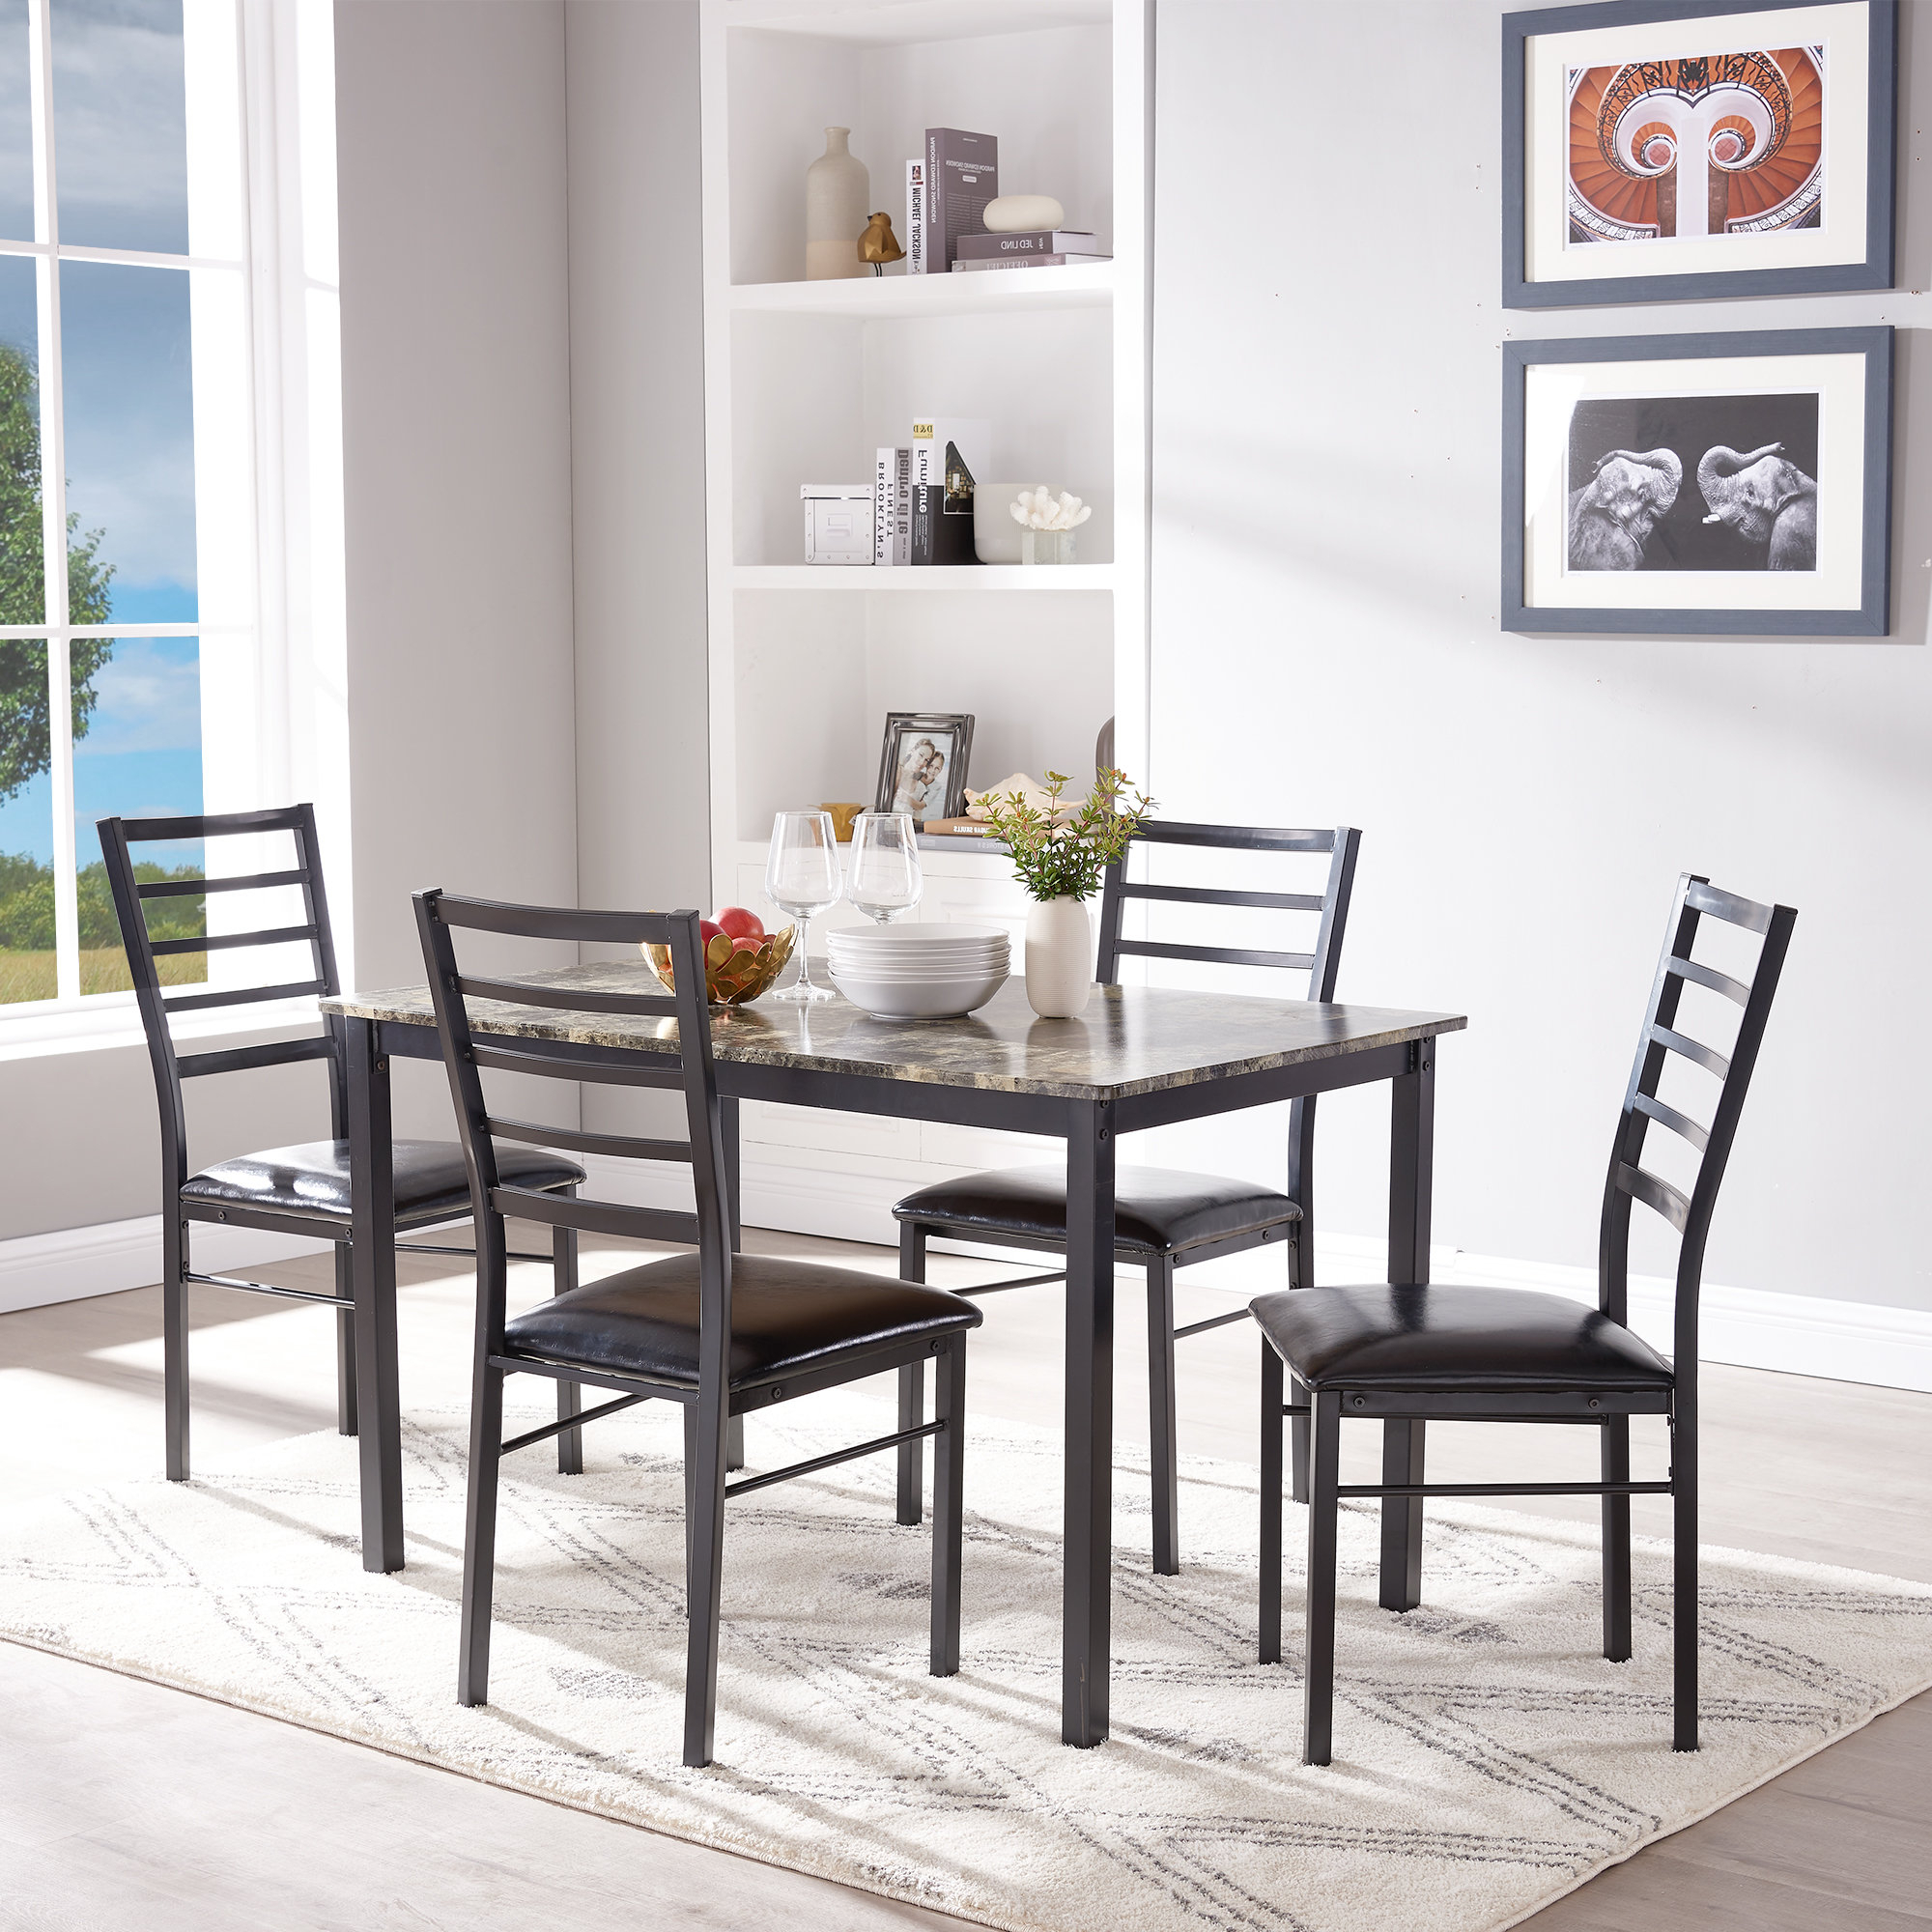 Taulbee 5 Piece Dining Sets Throughout Well Known Mukai 5 Piece Dining Set (Gallery 5 of 20)